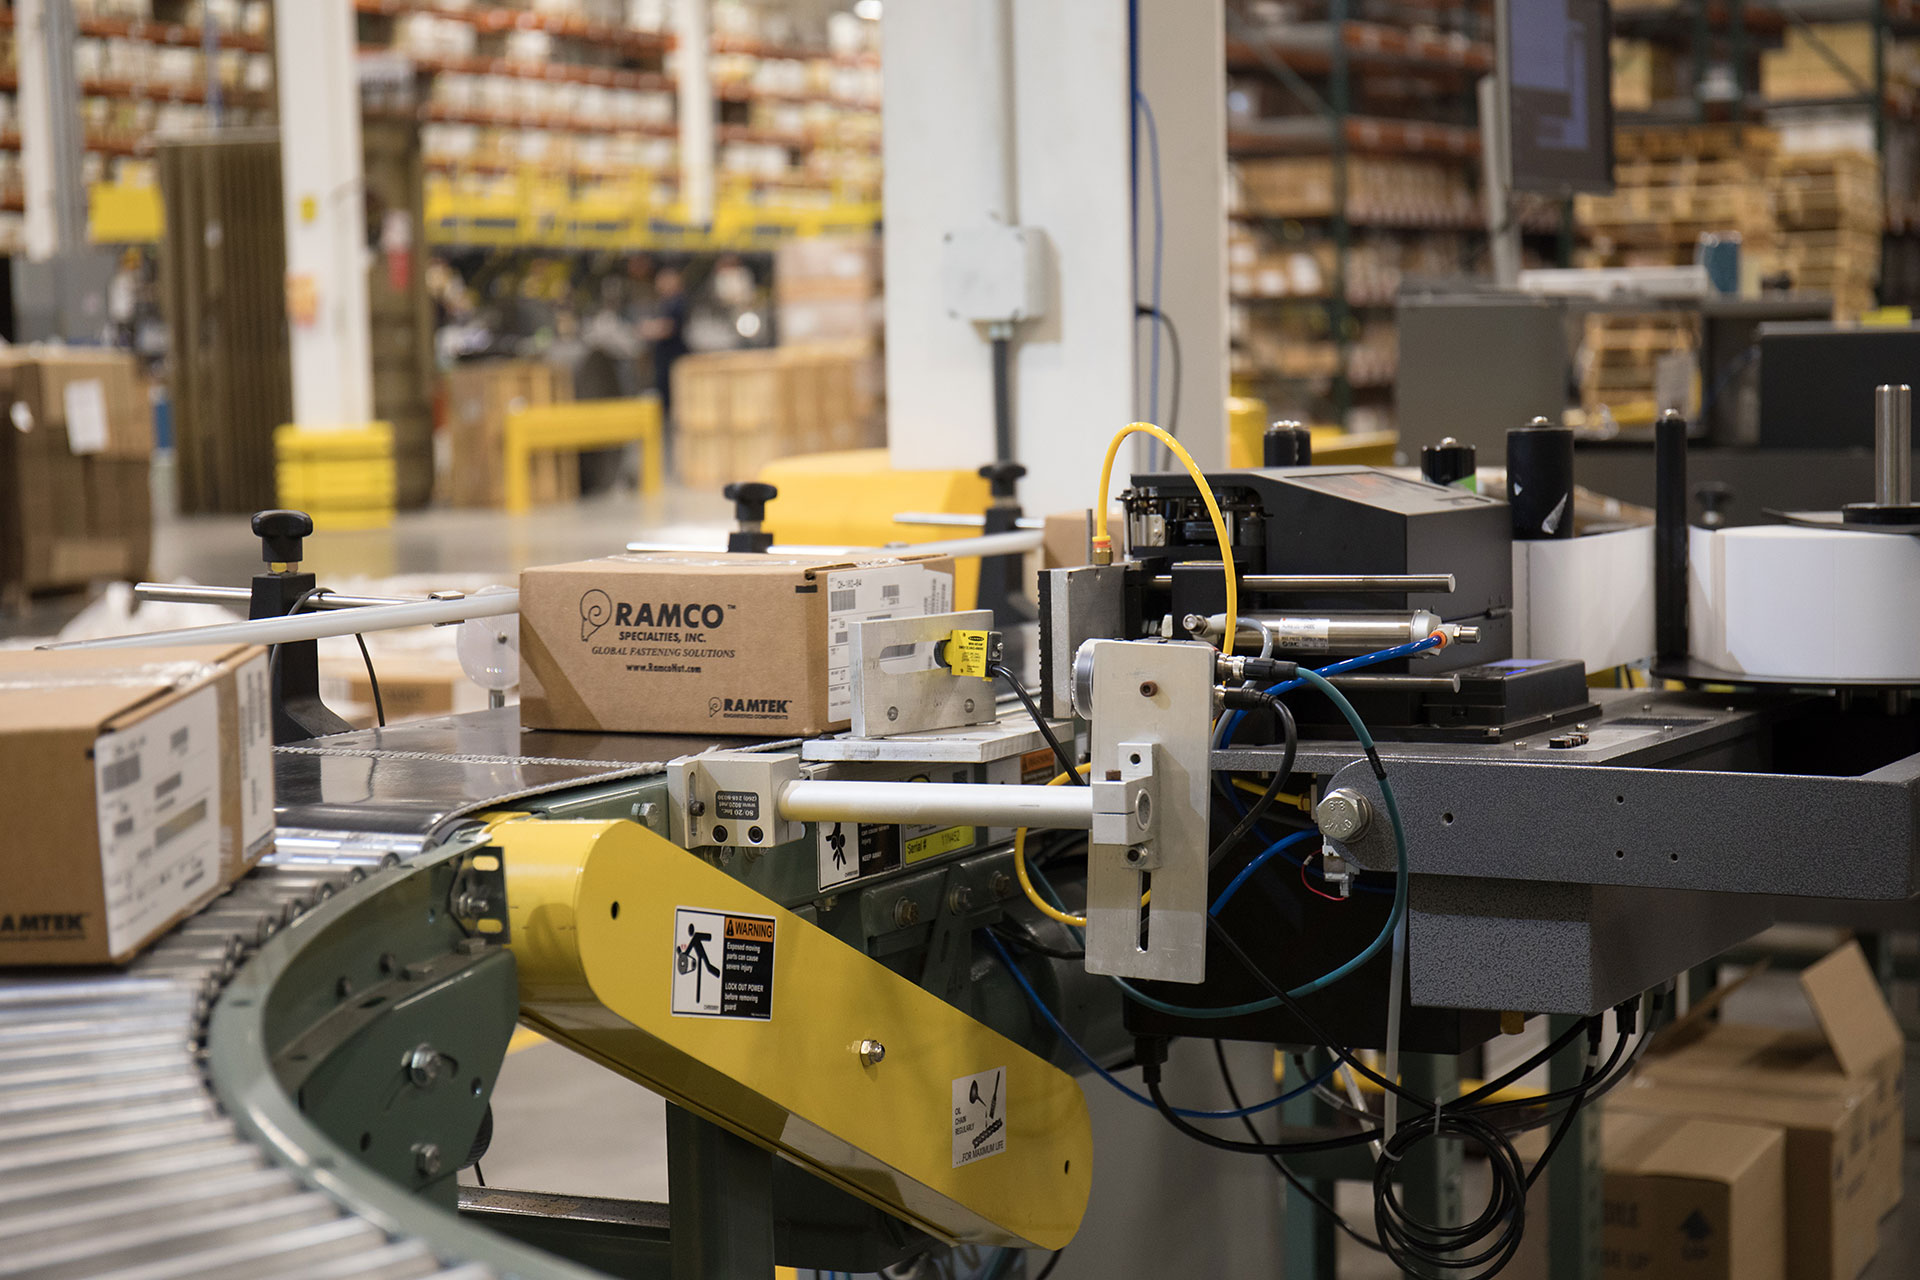 Label verification machine checking Ramco packages for accuracy